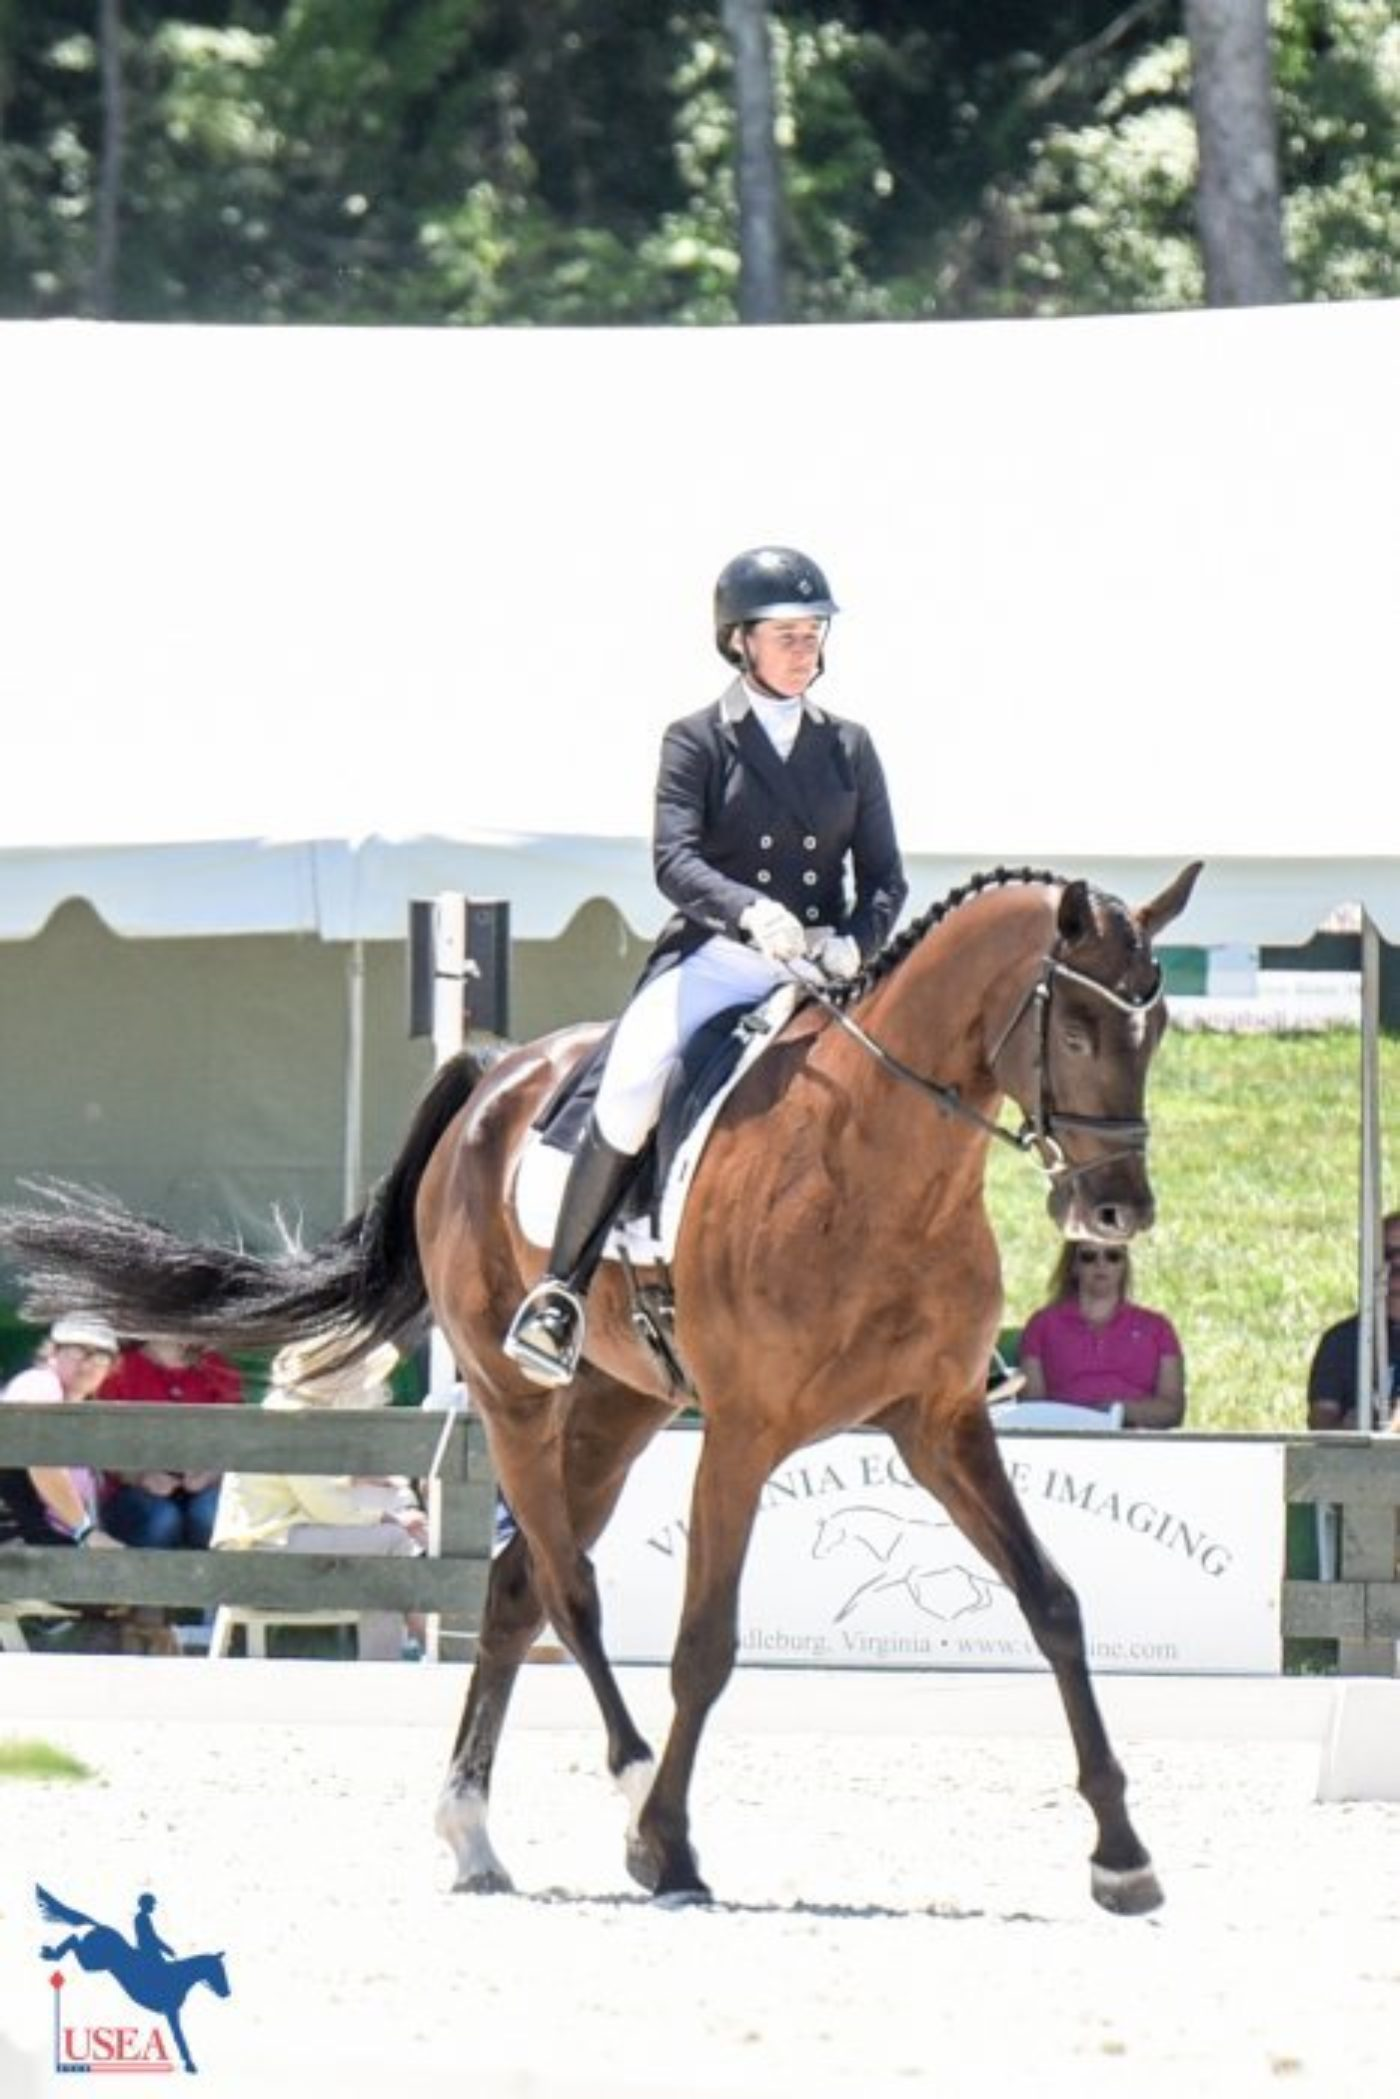 30th - Sydney Elliott and QC Diamantaire - 36.6